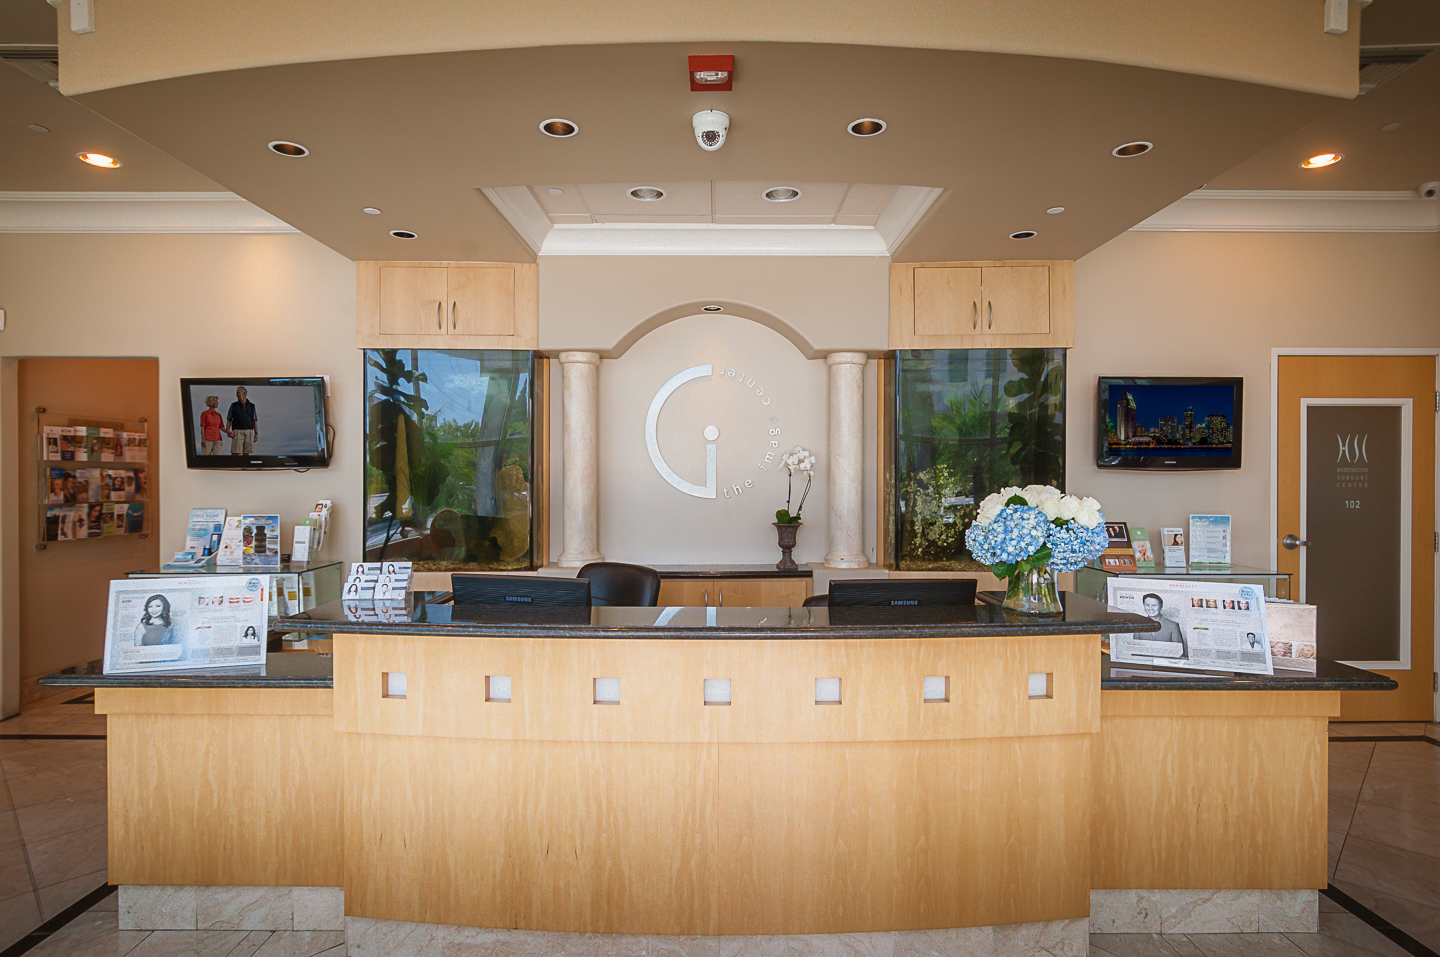 Gencore Center Front Desk Image